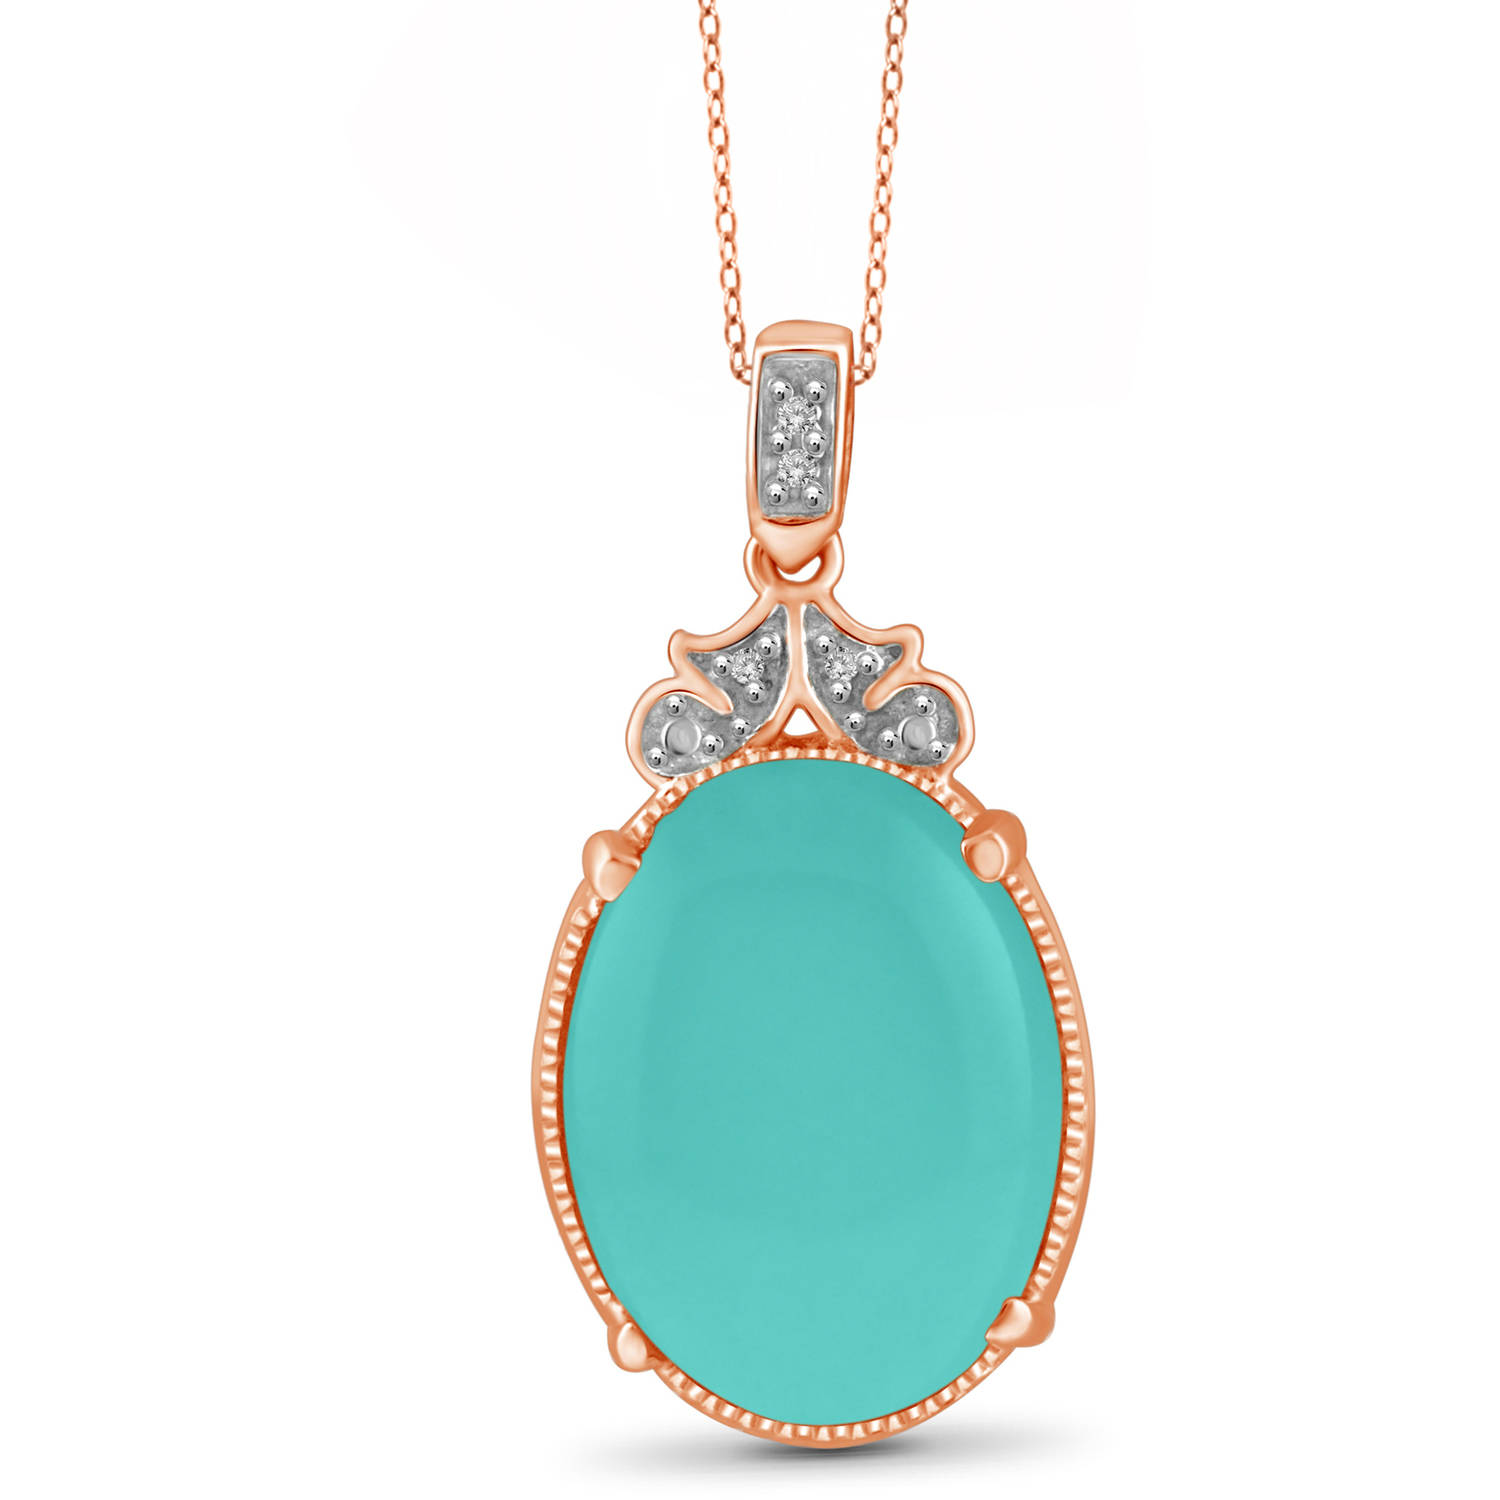 "JewelersClub 10-3 4 Carat T.G.W. Chalcedony and White Diamond Accent Rose Gold over Silver Fashion Pendant, 18"" by JewelersClub"